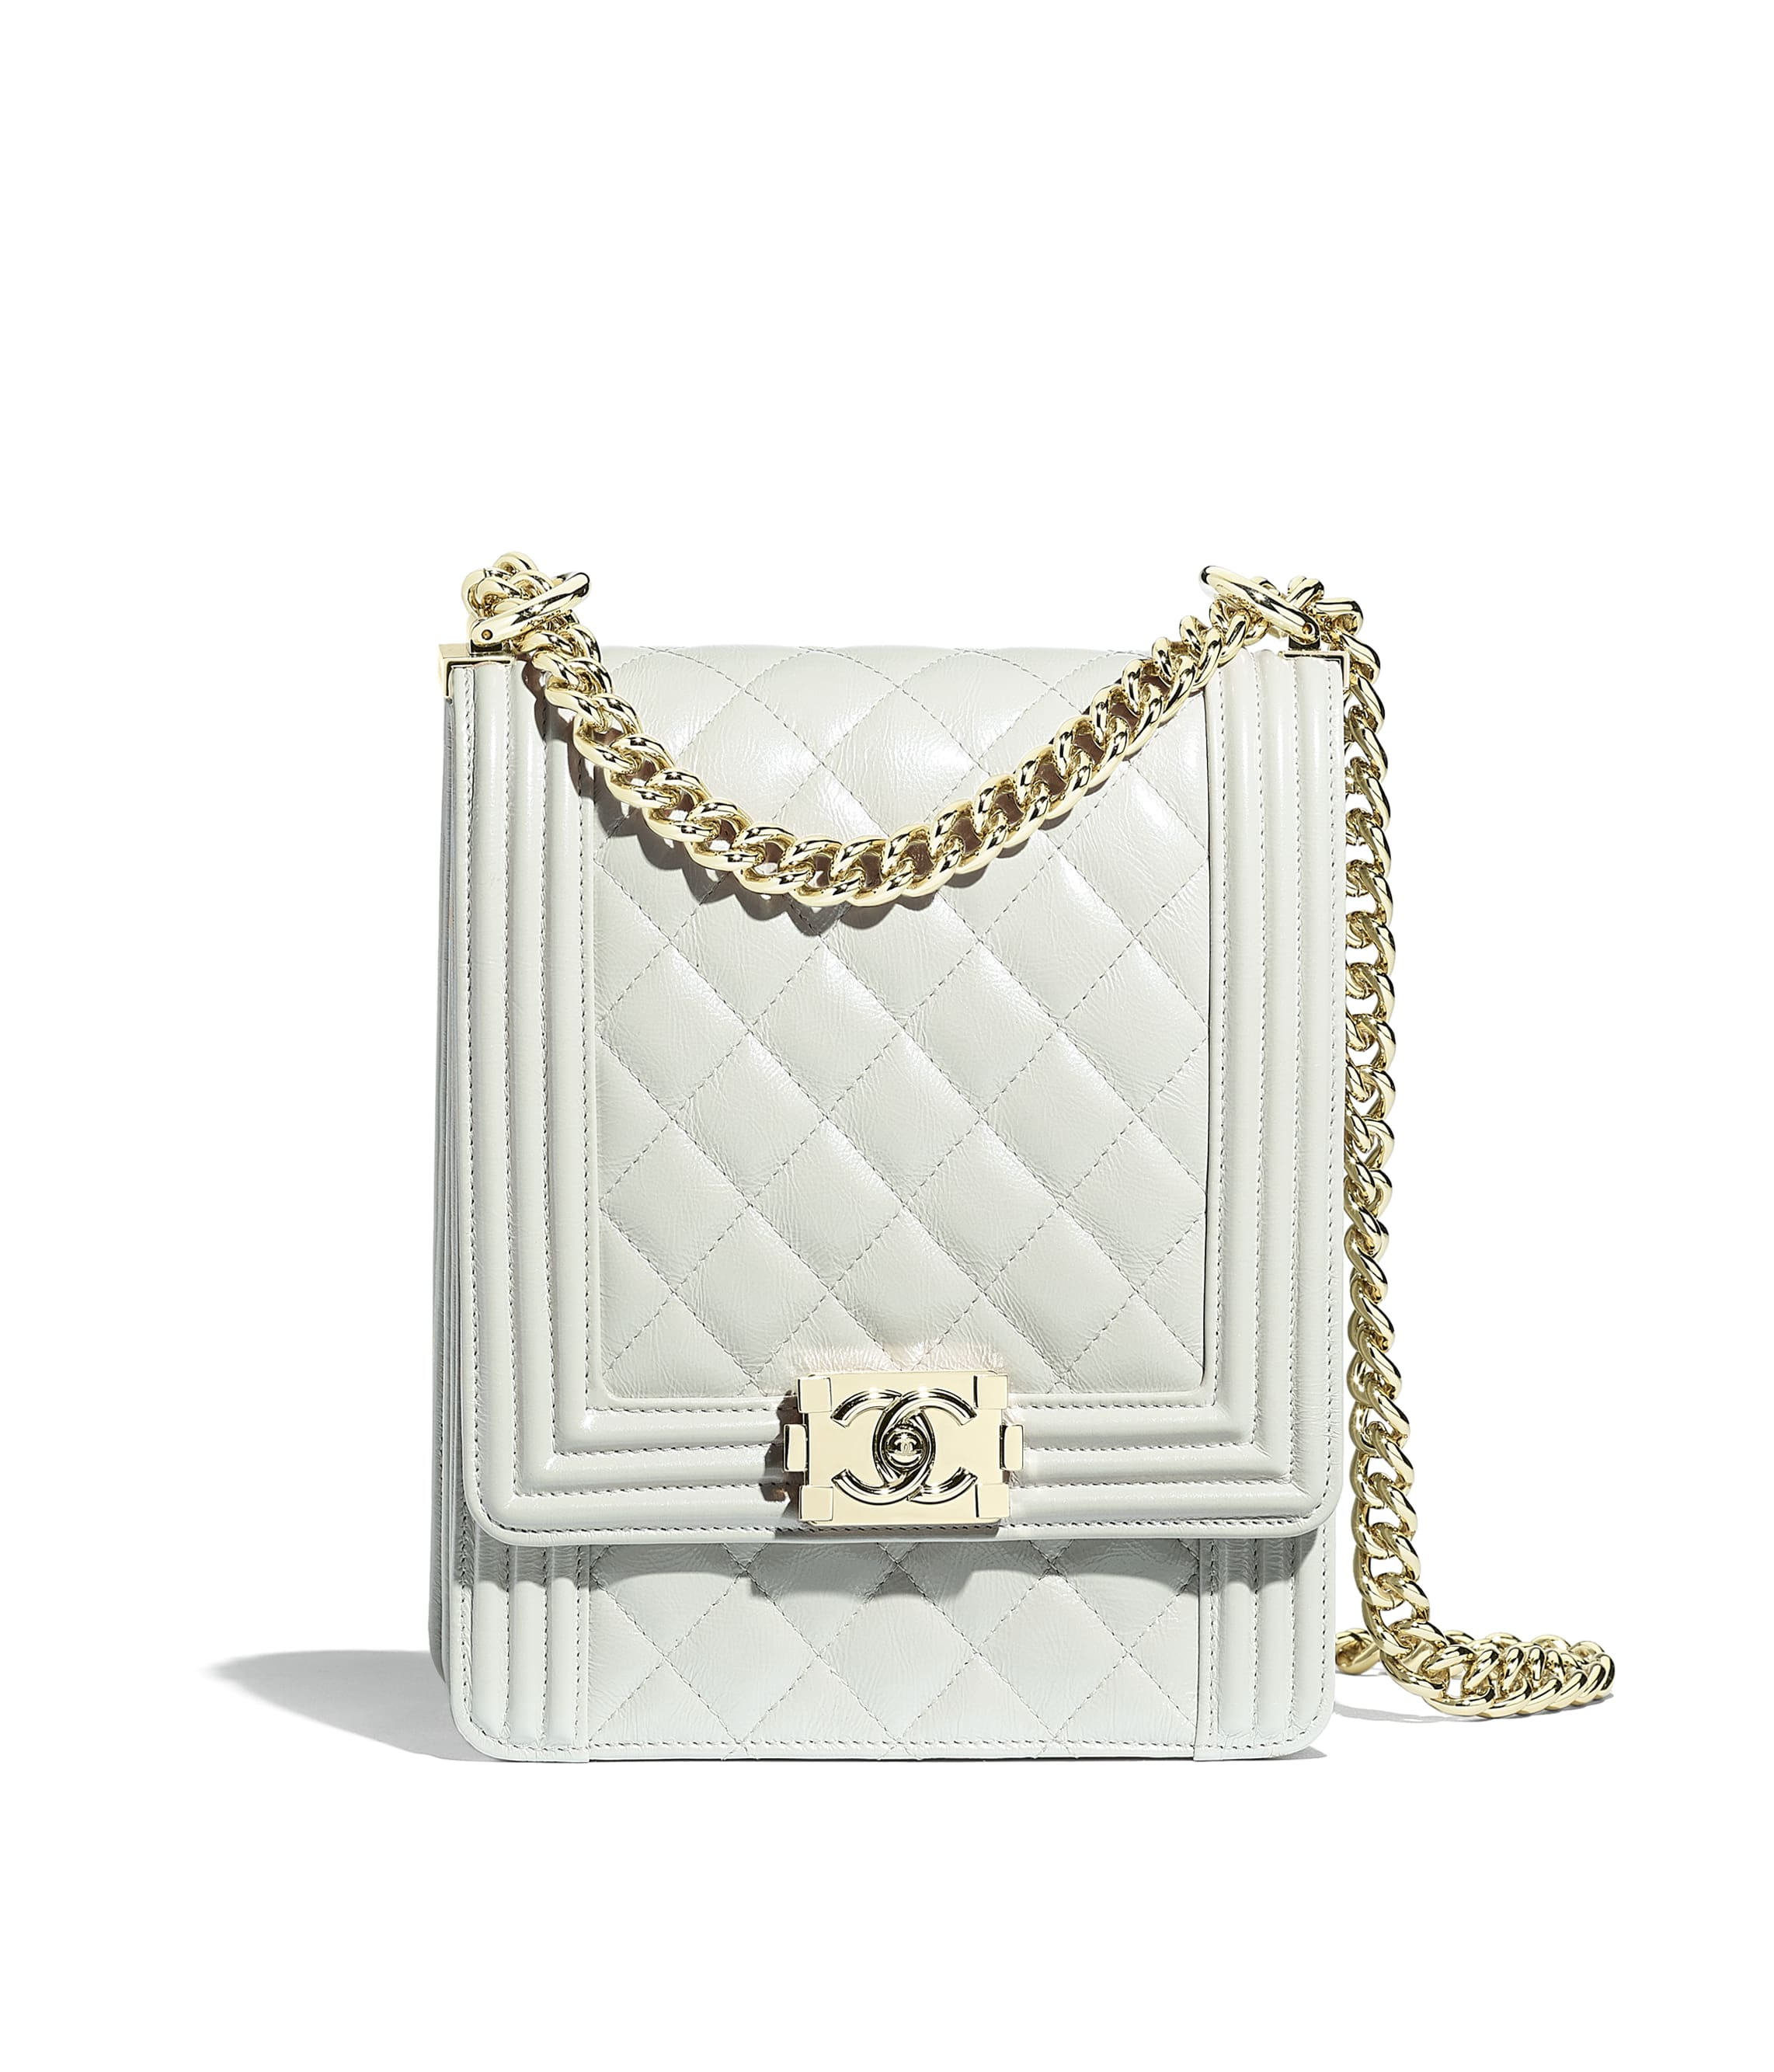 dfb7ff0c6ecb BOY CHANEL - Handbags - CHANEL